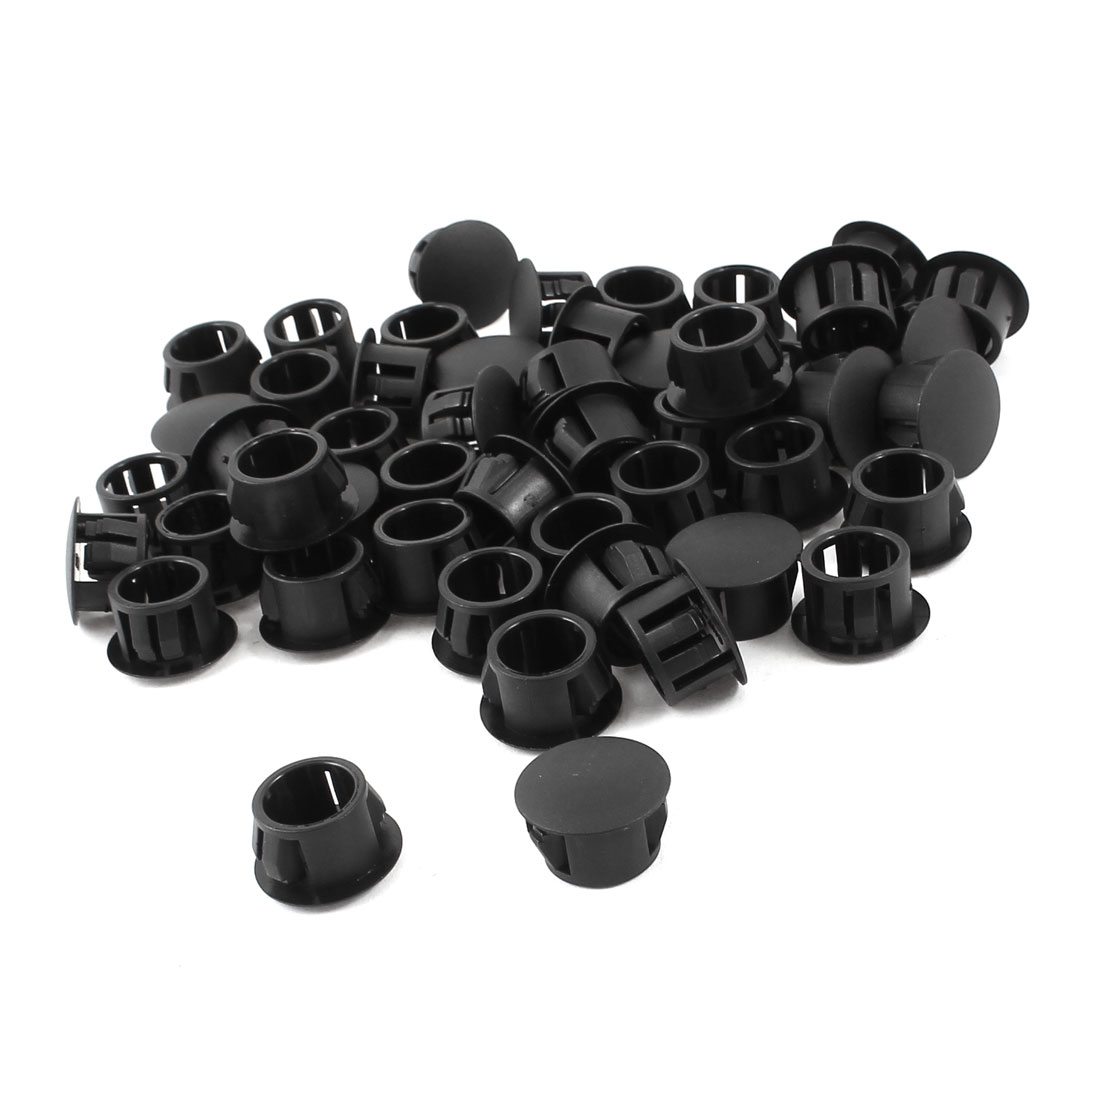 50pcs Black Plastic 13mm Diameter Snap in Type Locking Hole Button Cover 13mm x 16.5mm x 10mm